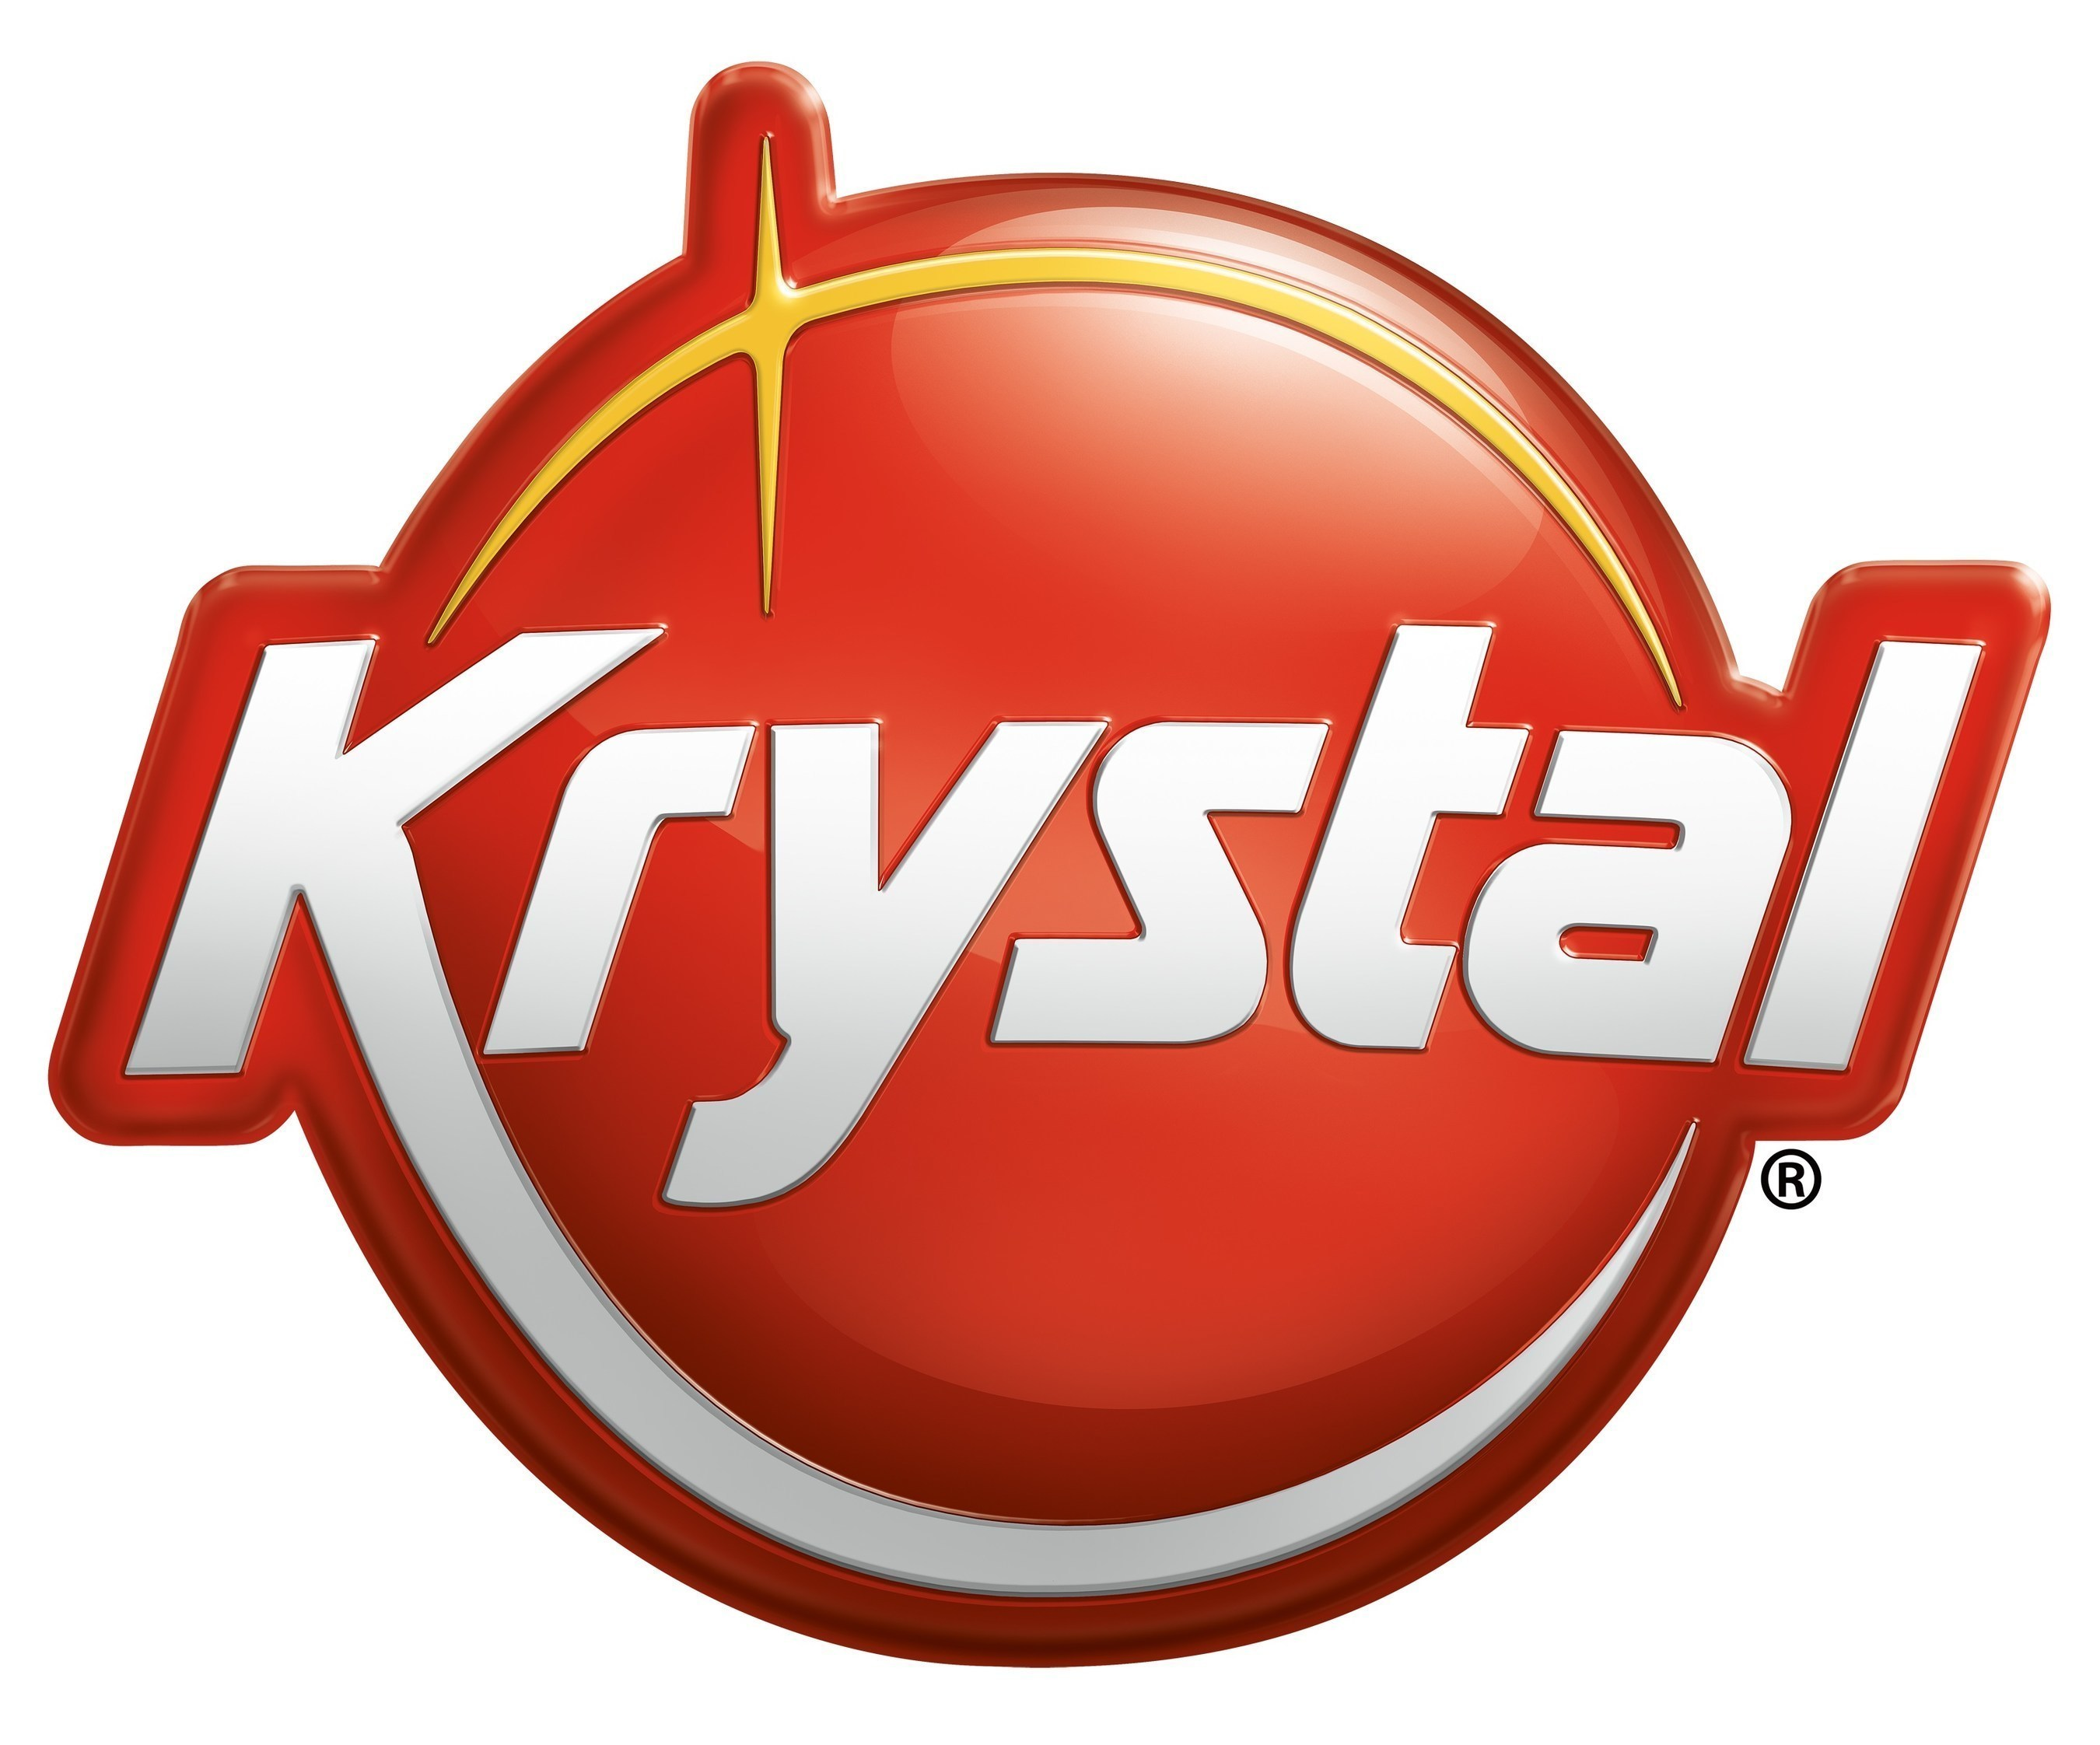 Krystal launches their new barbecue or buffalo flavored boneless wings, this promotion starts August 8th and carries on through October 16th.